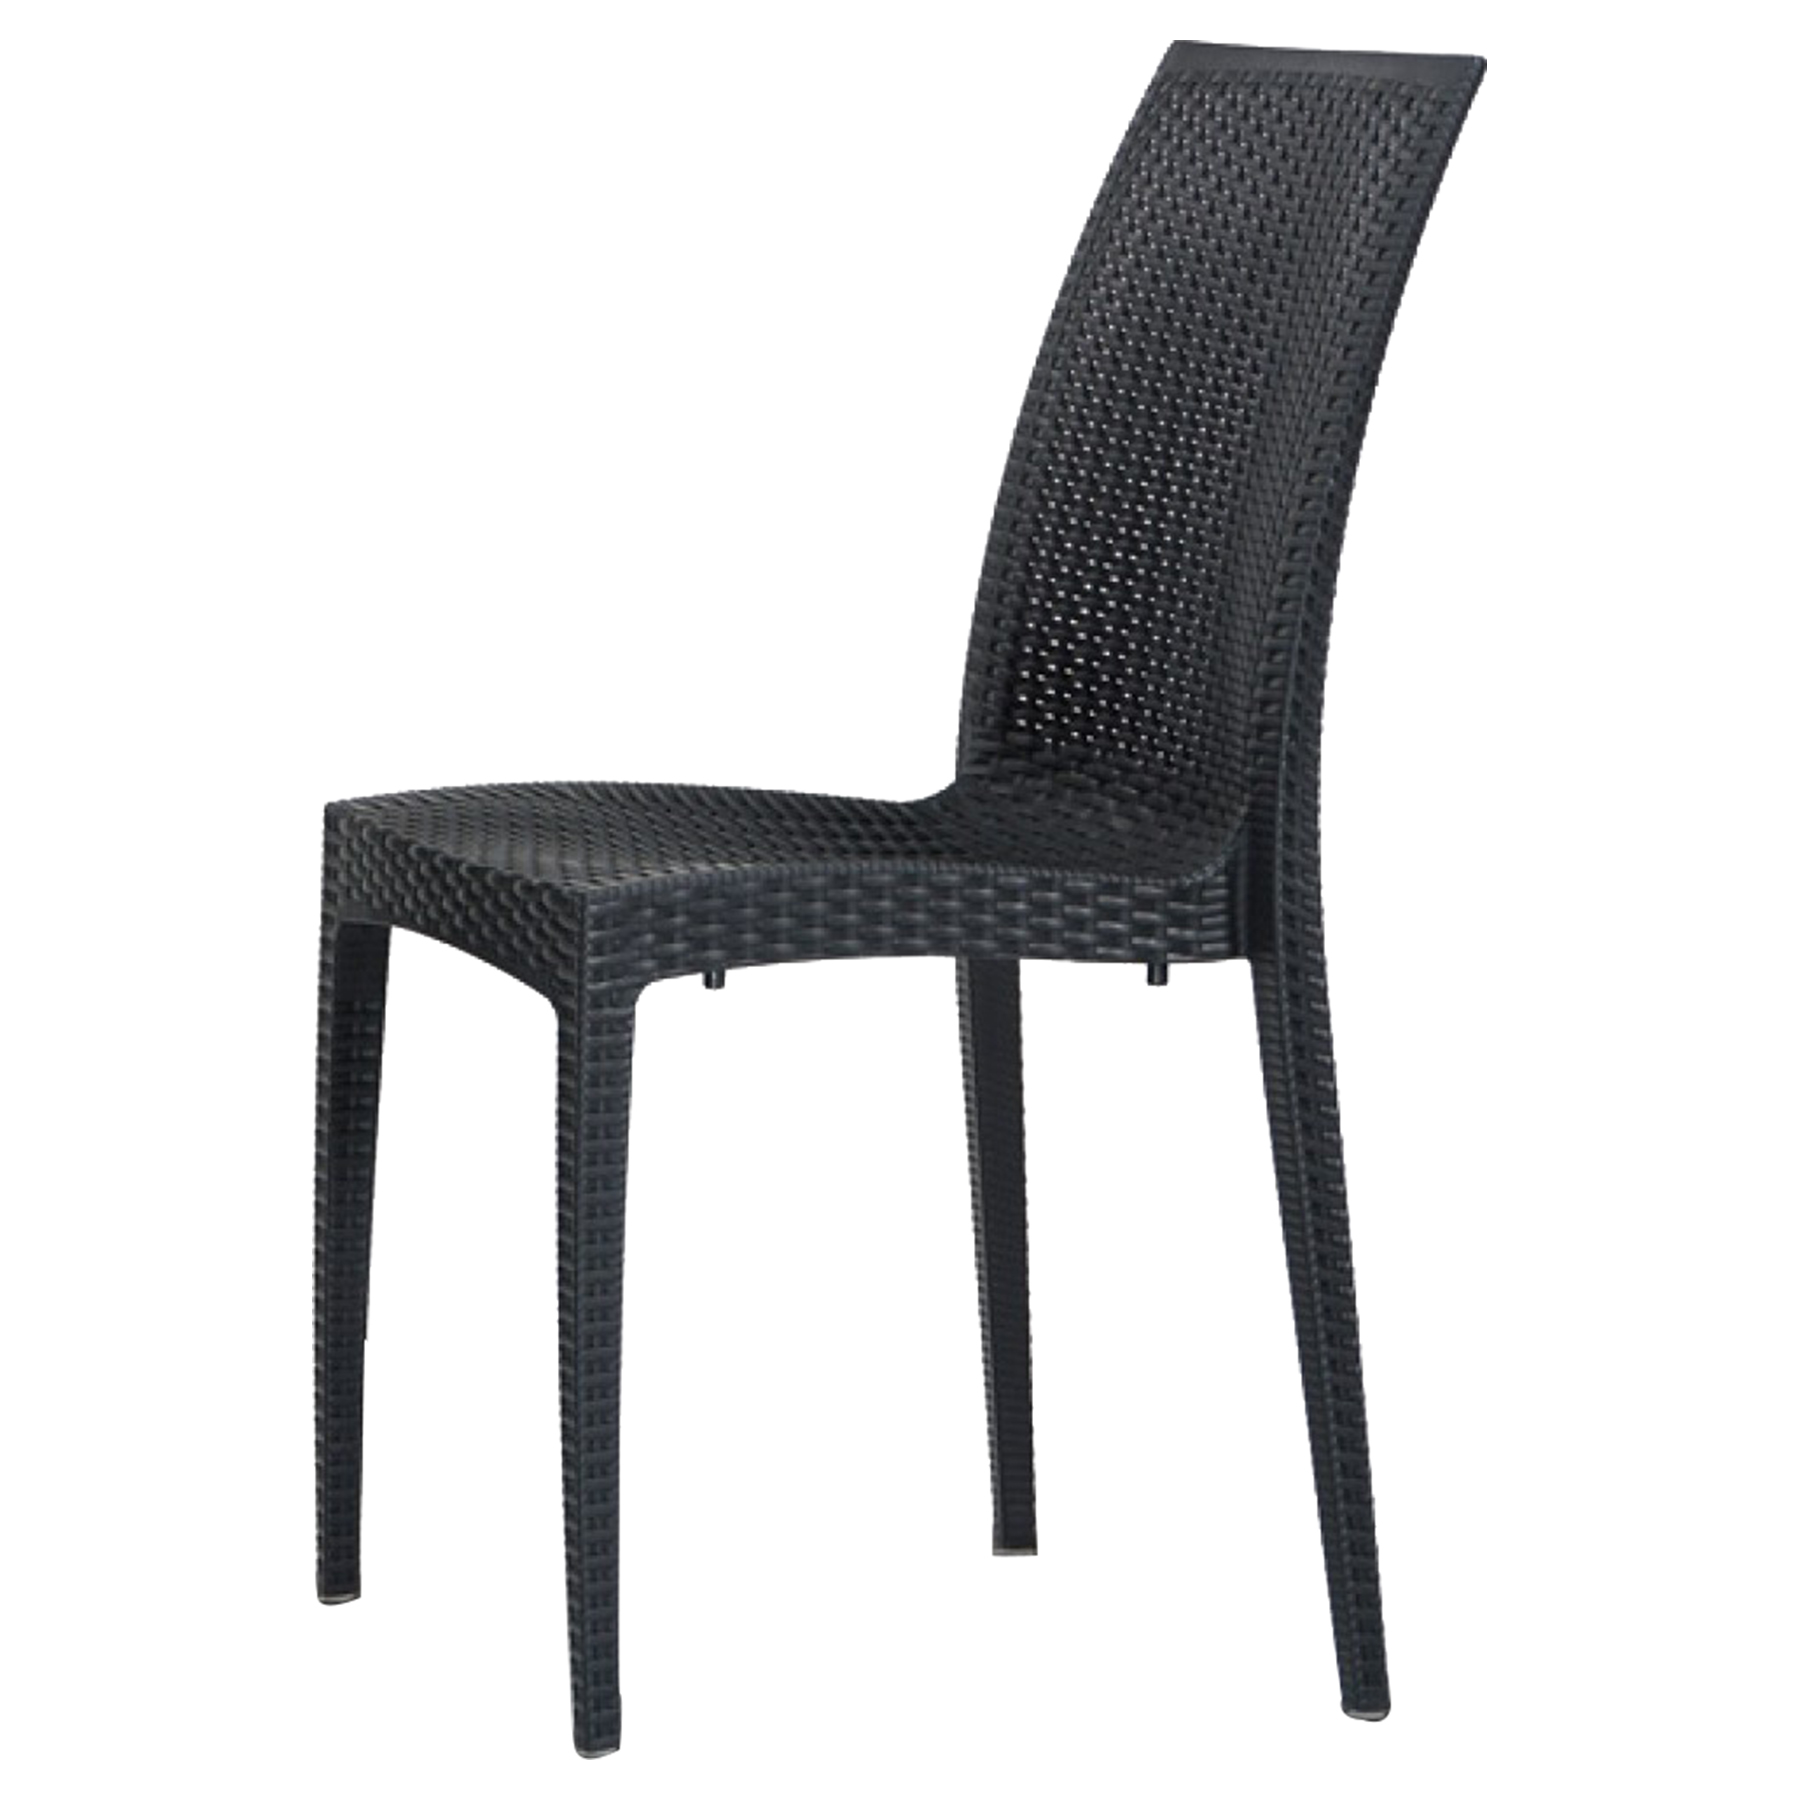 gallery of renava bistrot modern patio dining chair charcoal with chaise bistrot but. Black Bedroom Furniture Sets. Home Design Ideas